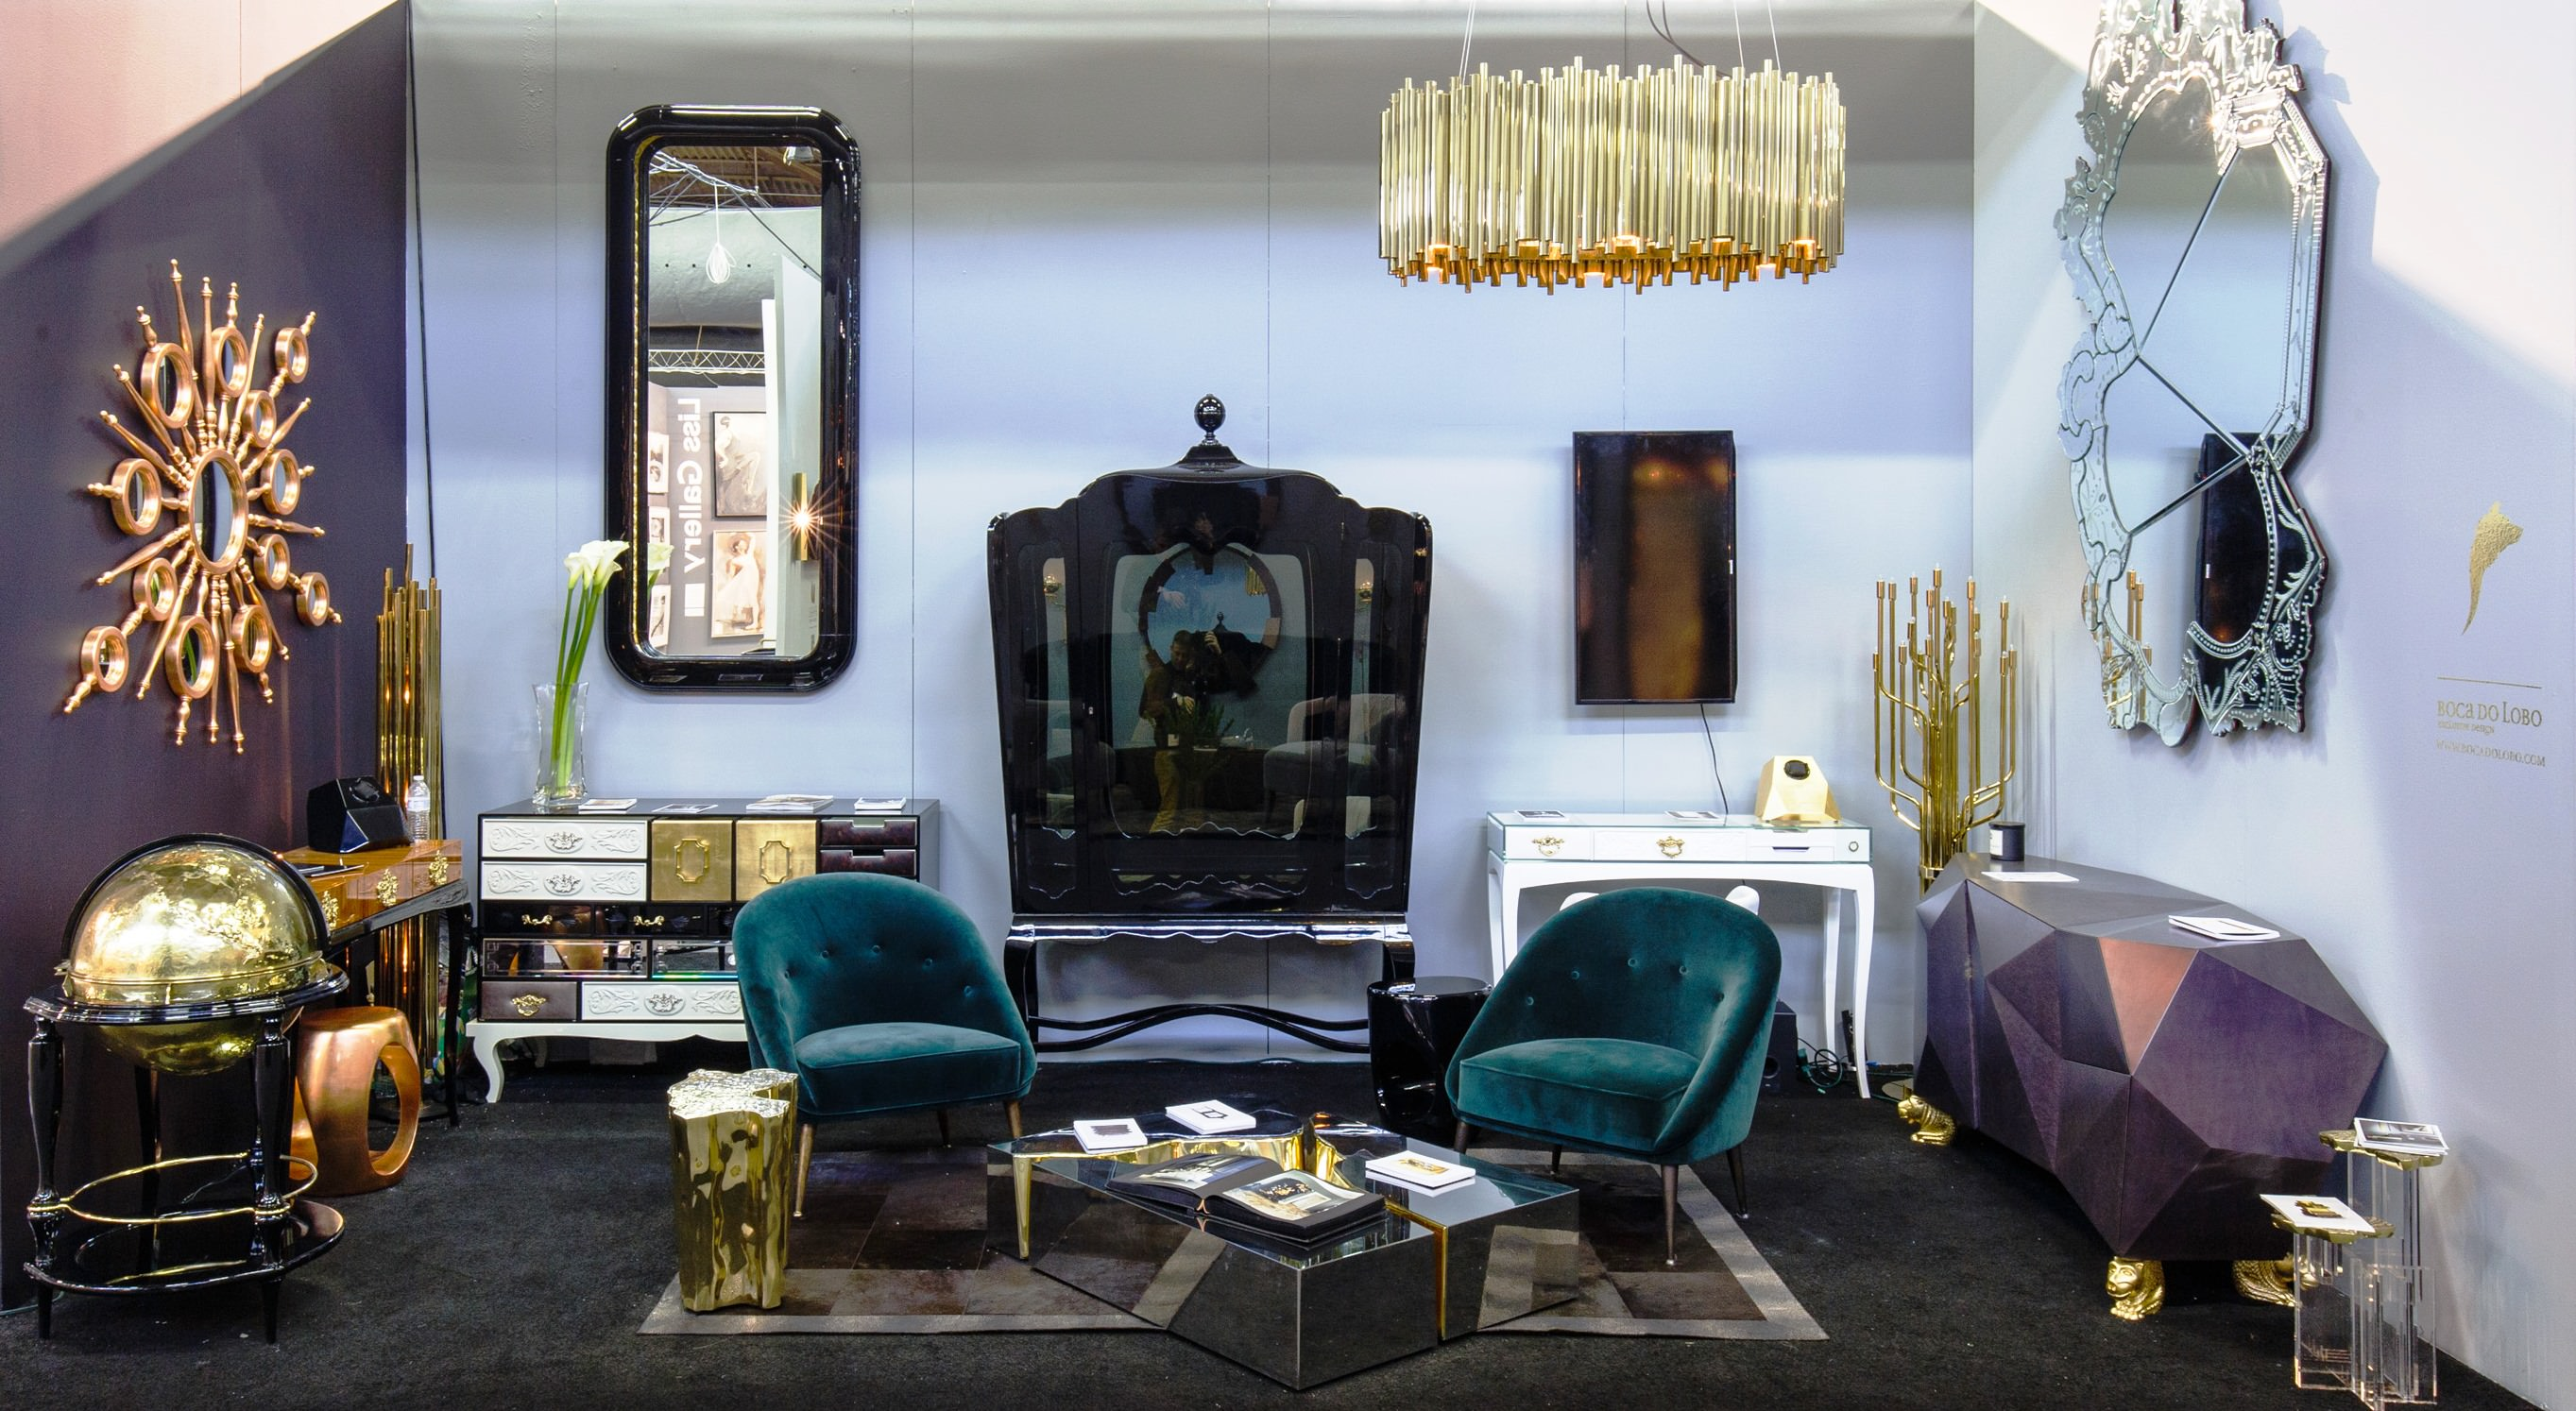 design events in march Design Events in March – From Birmingham to New York Boca do Lobo Design News AD SHOW HIGHLIGHTS